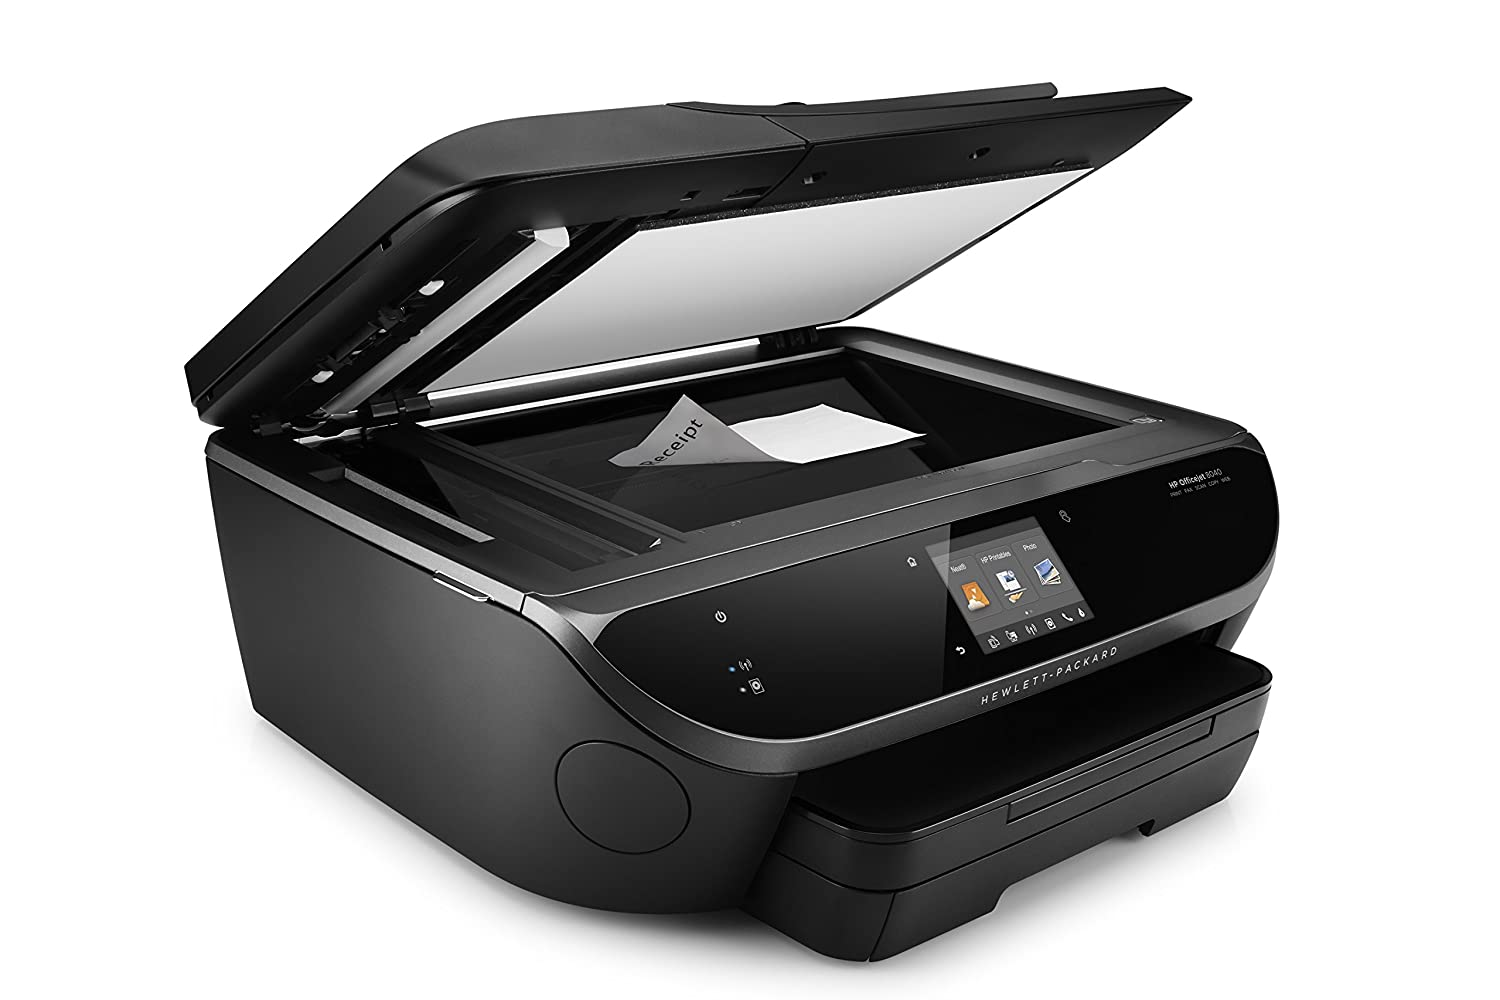 Amazon.com: HP OfficeJet 8040 (F5A16A) impresora de fotos ...